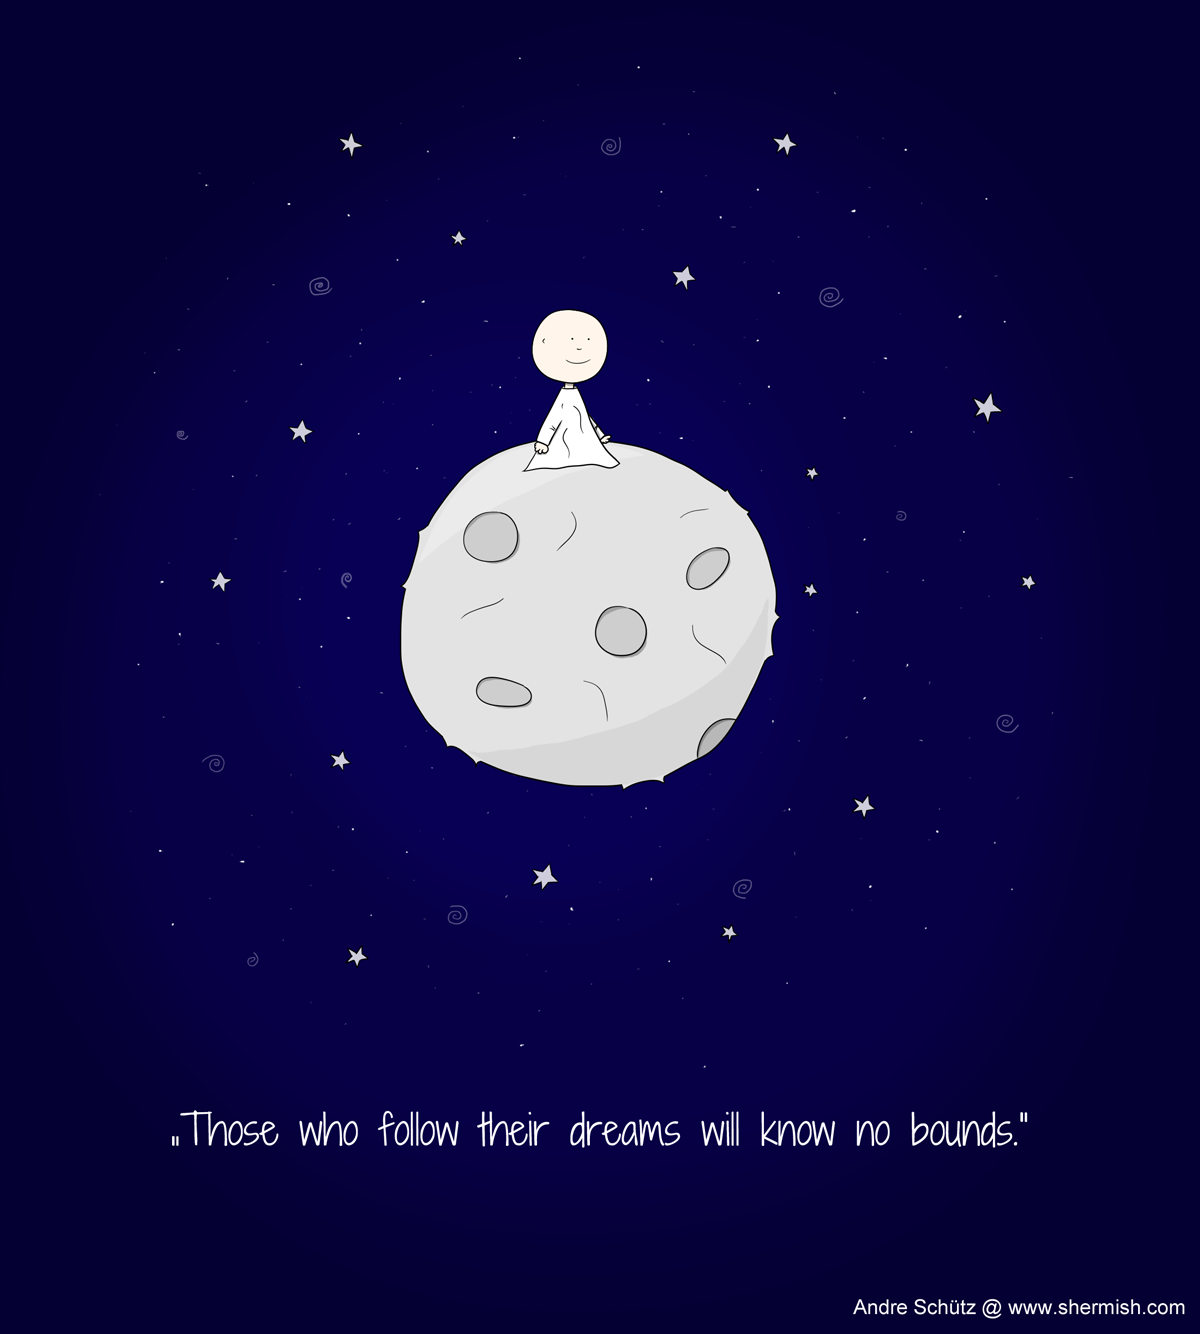 Man in the Moon: Follow your dreams